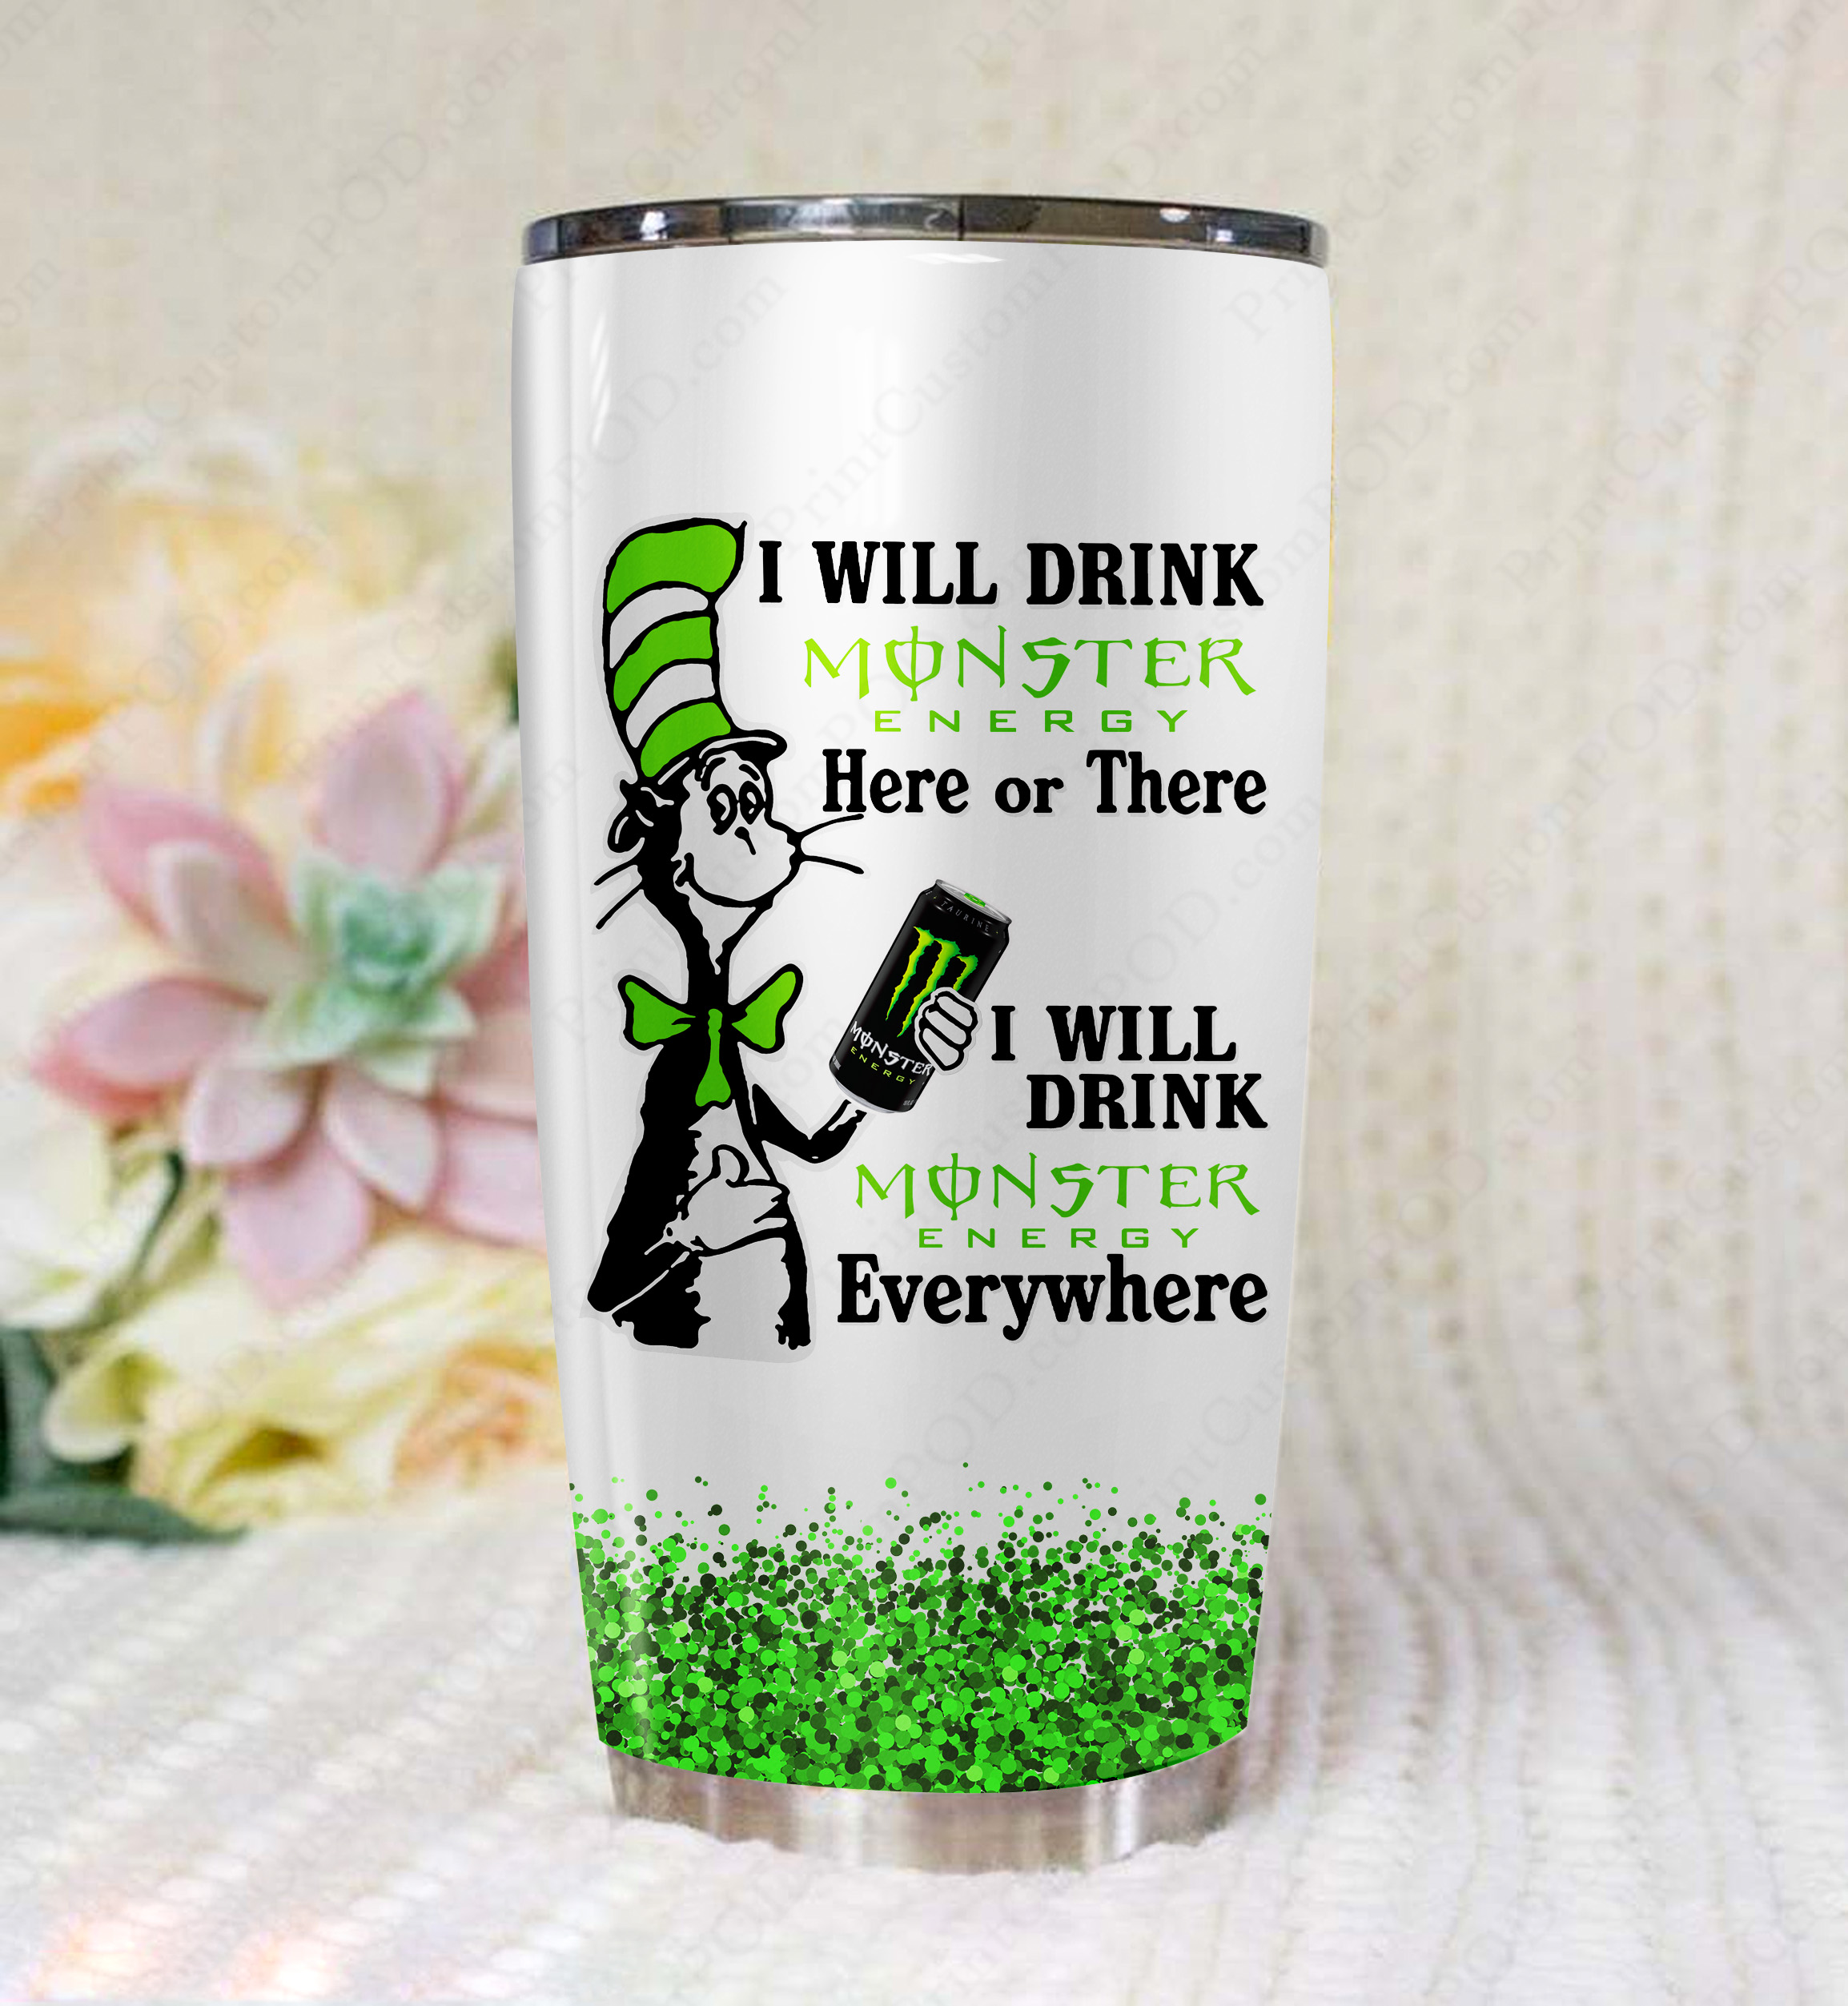 Dr seuss i will drink monster energy full over printed tumbler 4